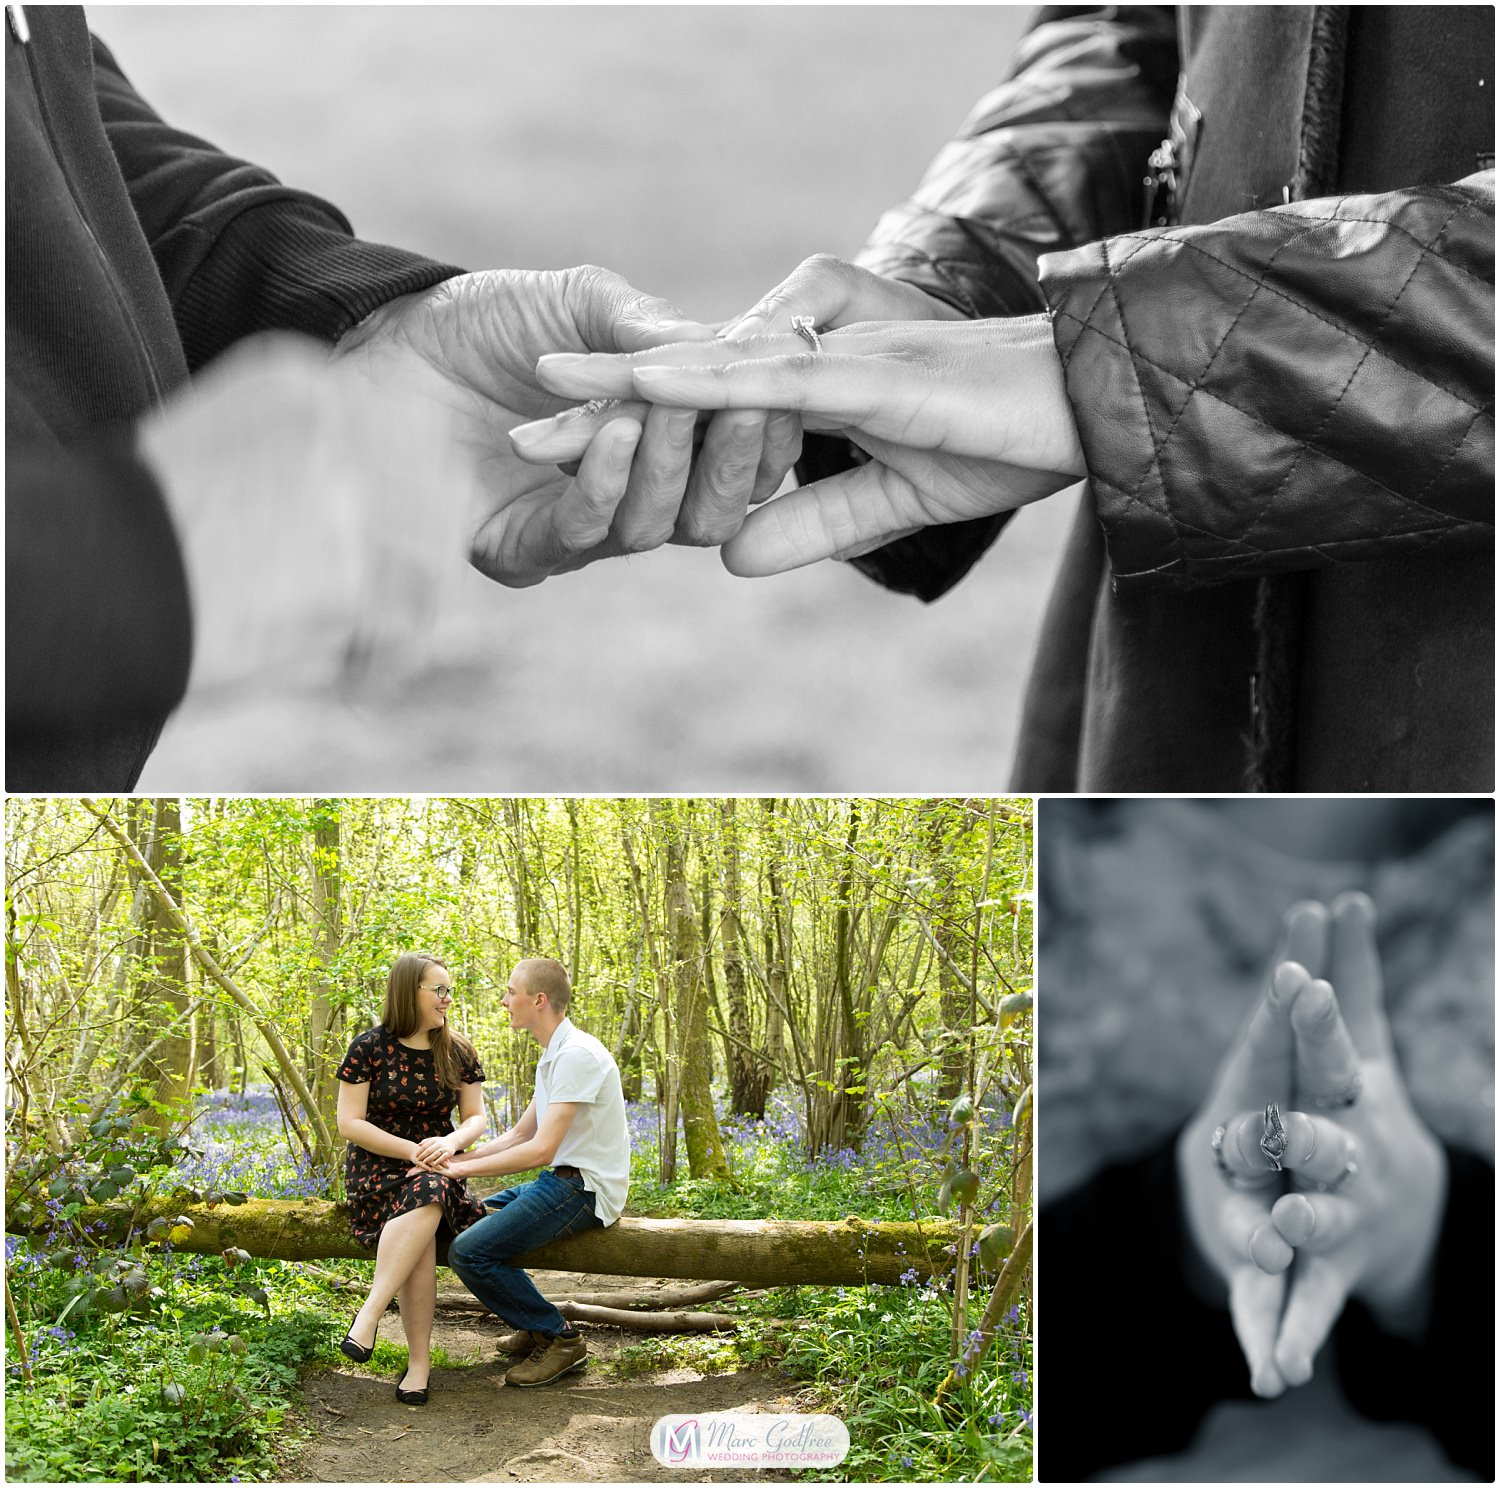 Wedding Proposal ideas - Top tips for popping the question